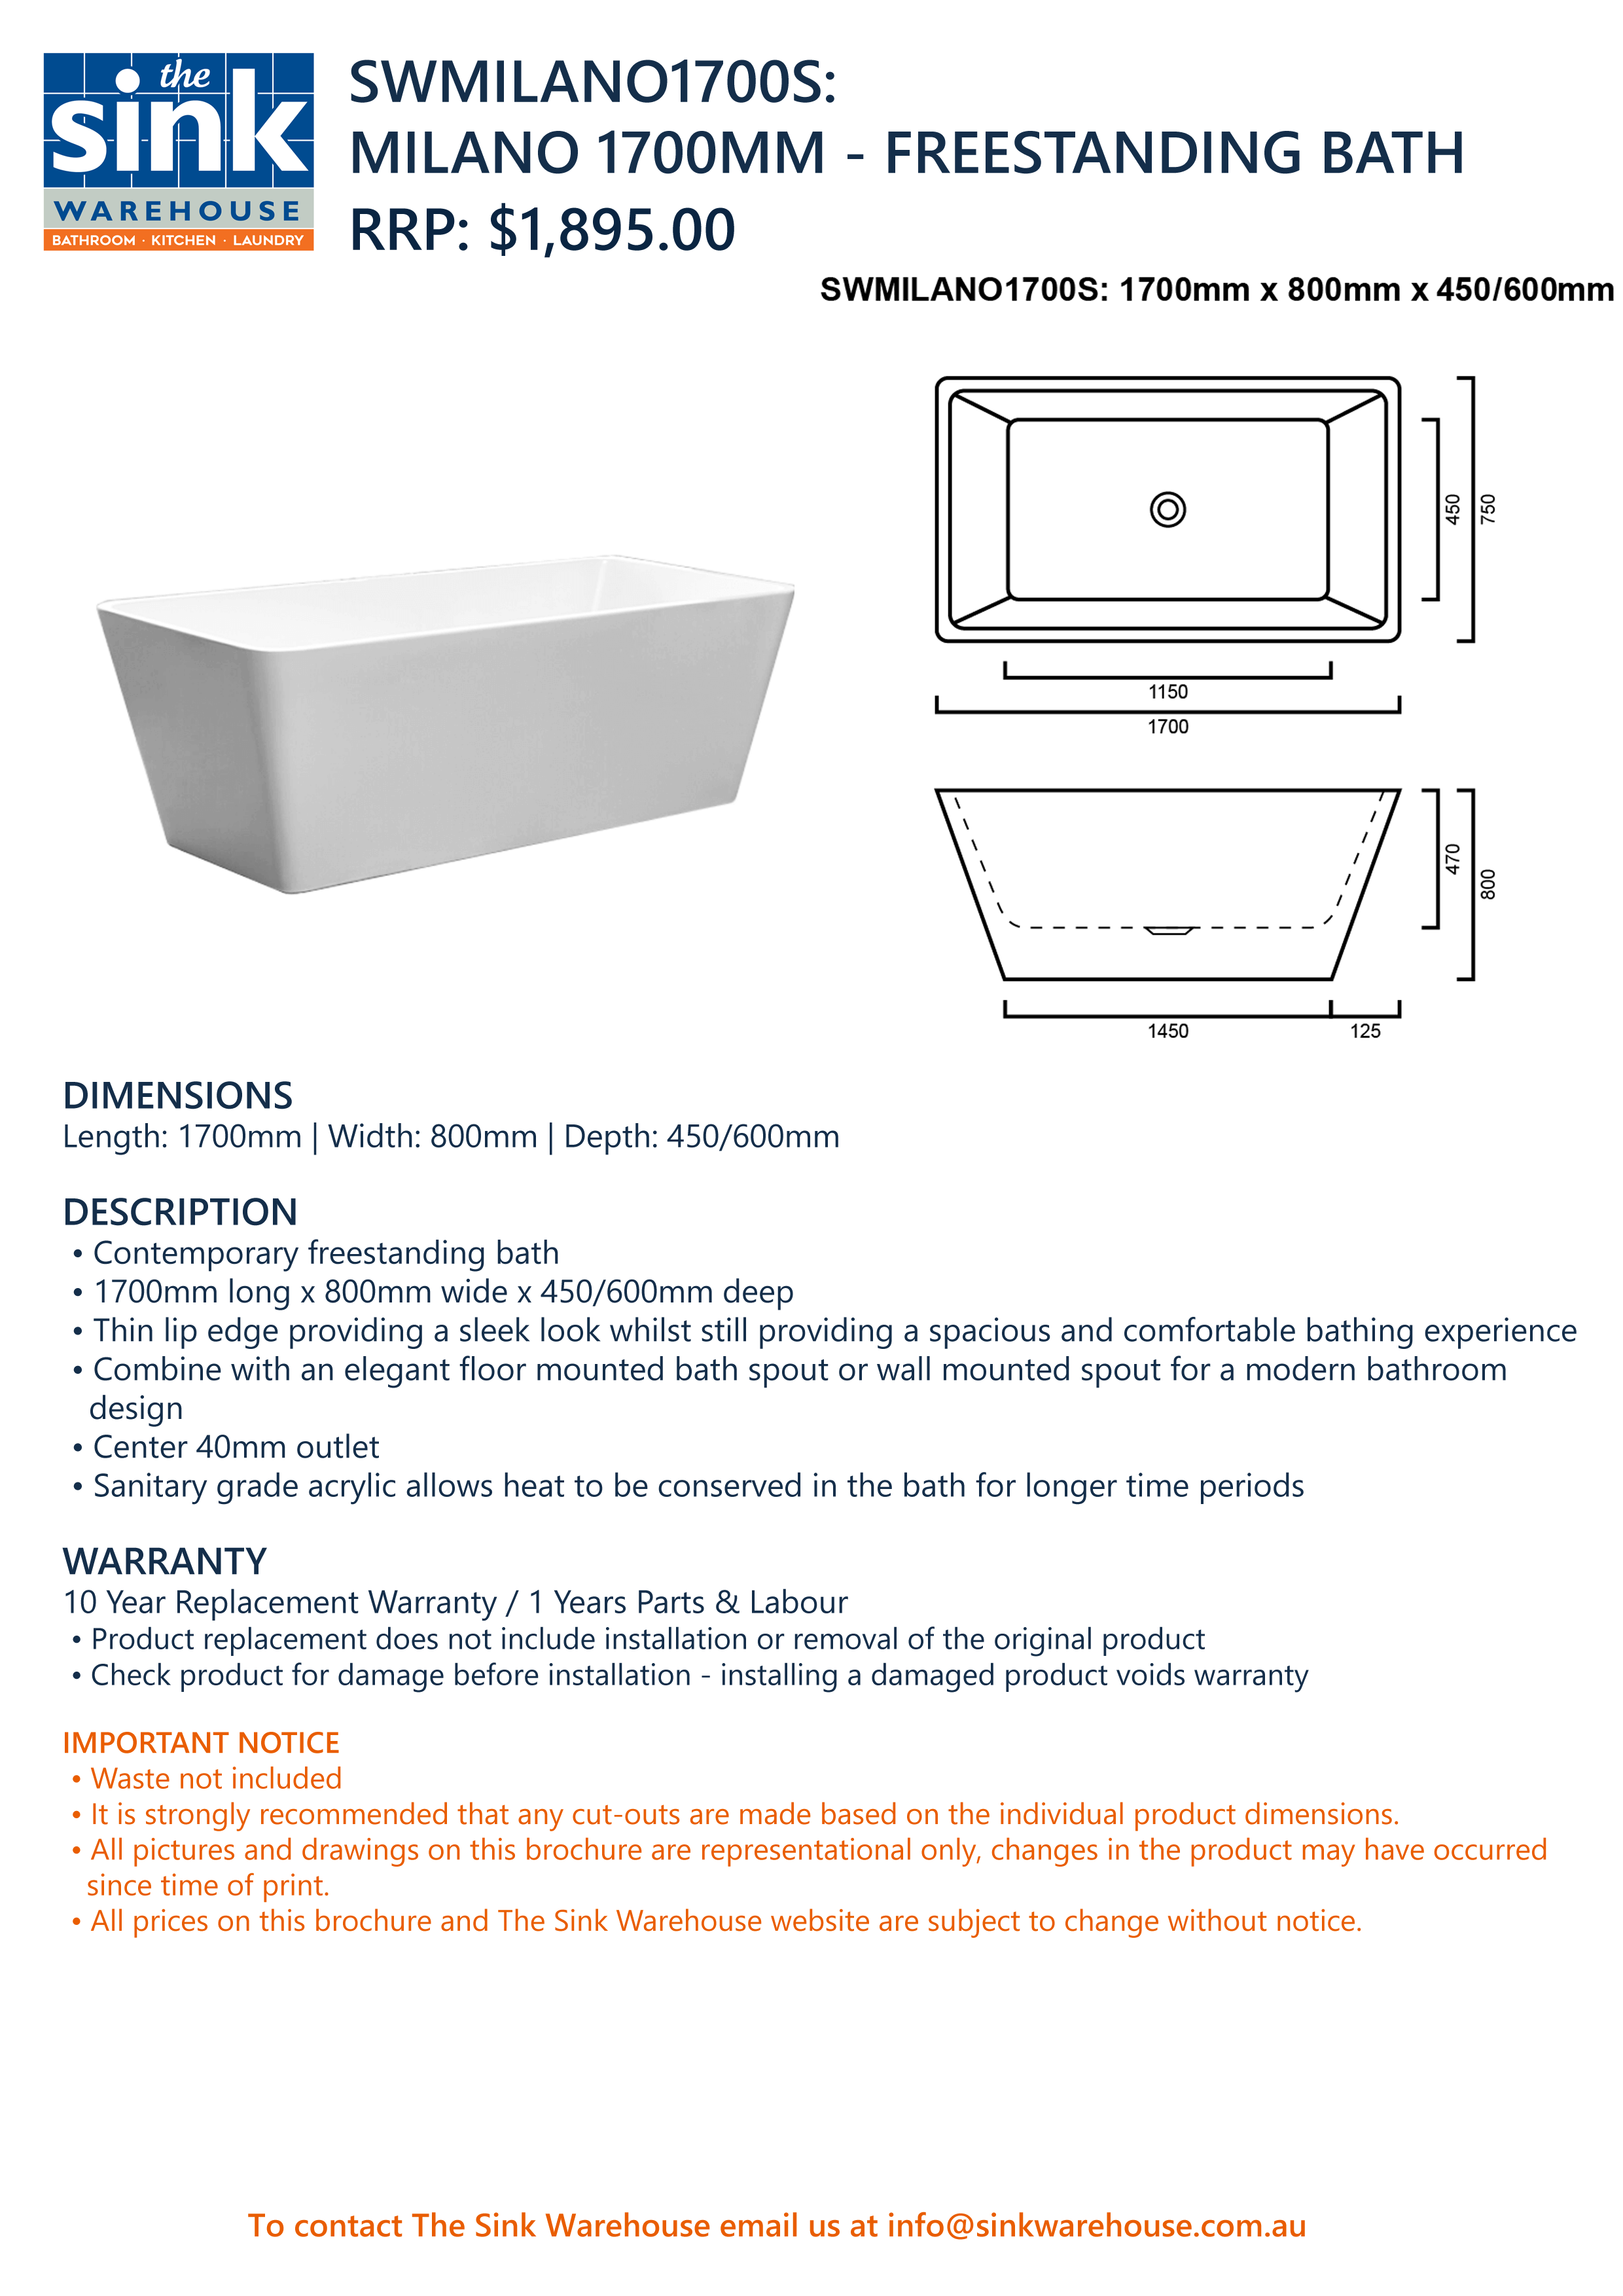 Milano - Freestanding Bath 1700mm | The Sink Warehouse | Shop Now!